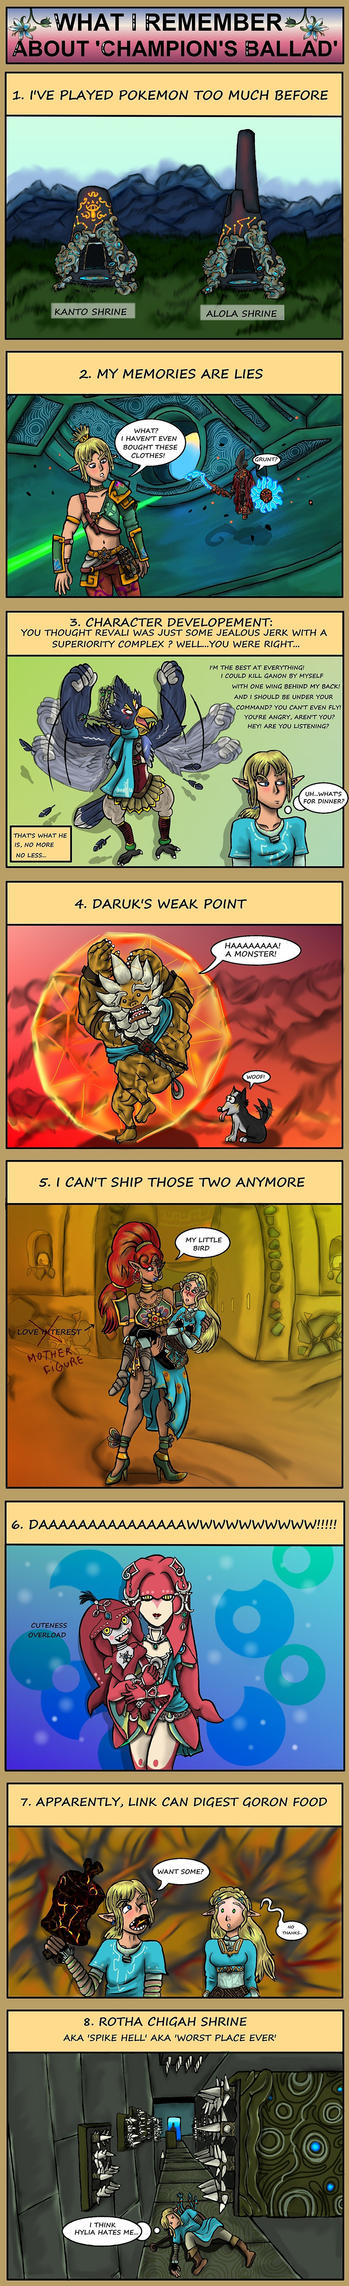 LOZ : About Champion's Ballad by Campanita42